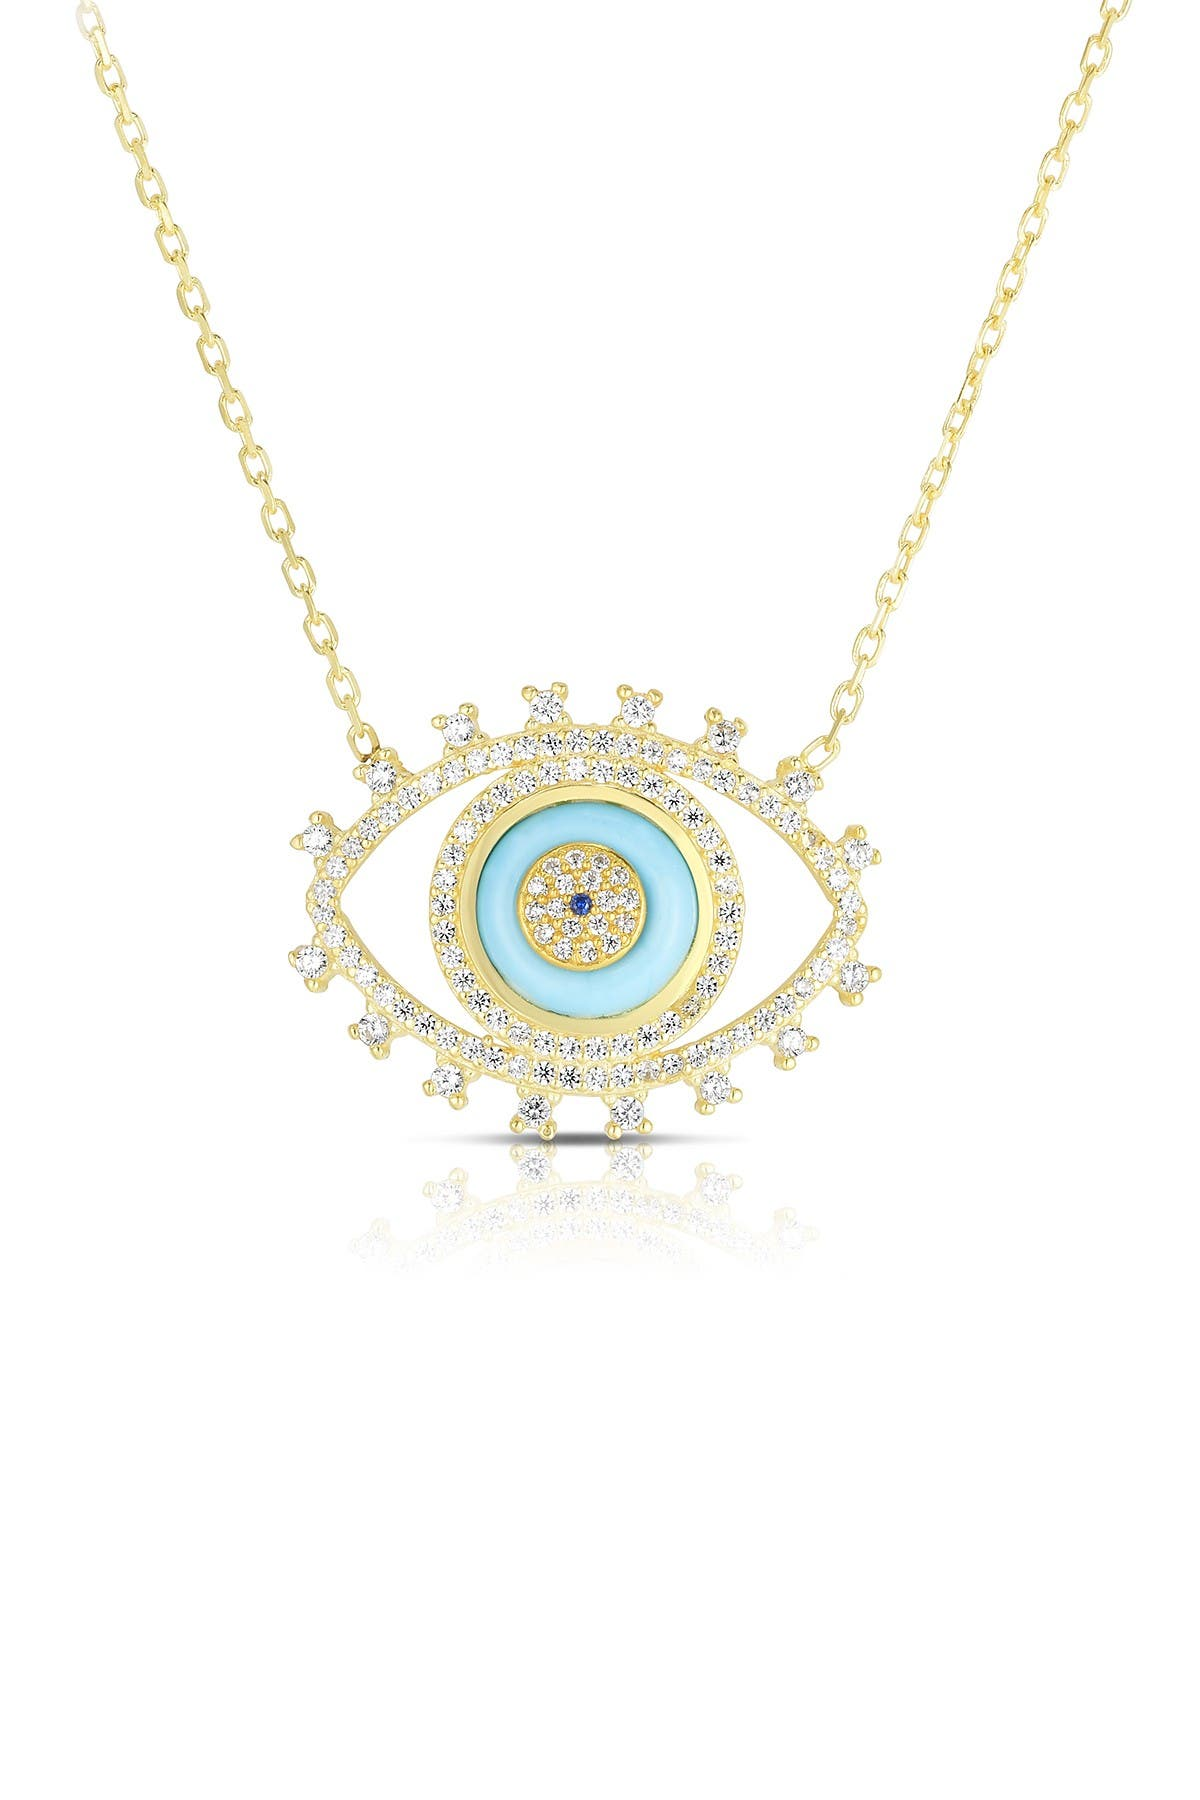 Image of Sphera Milano 14K Gold Plated Sterling Silver CZ Evil Eye Necklace